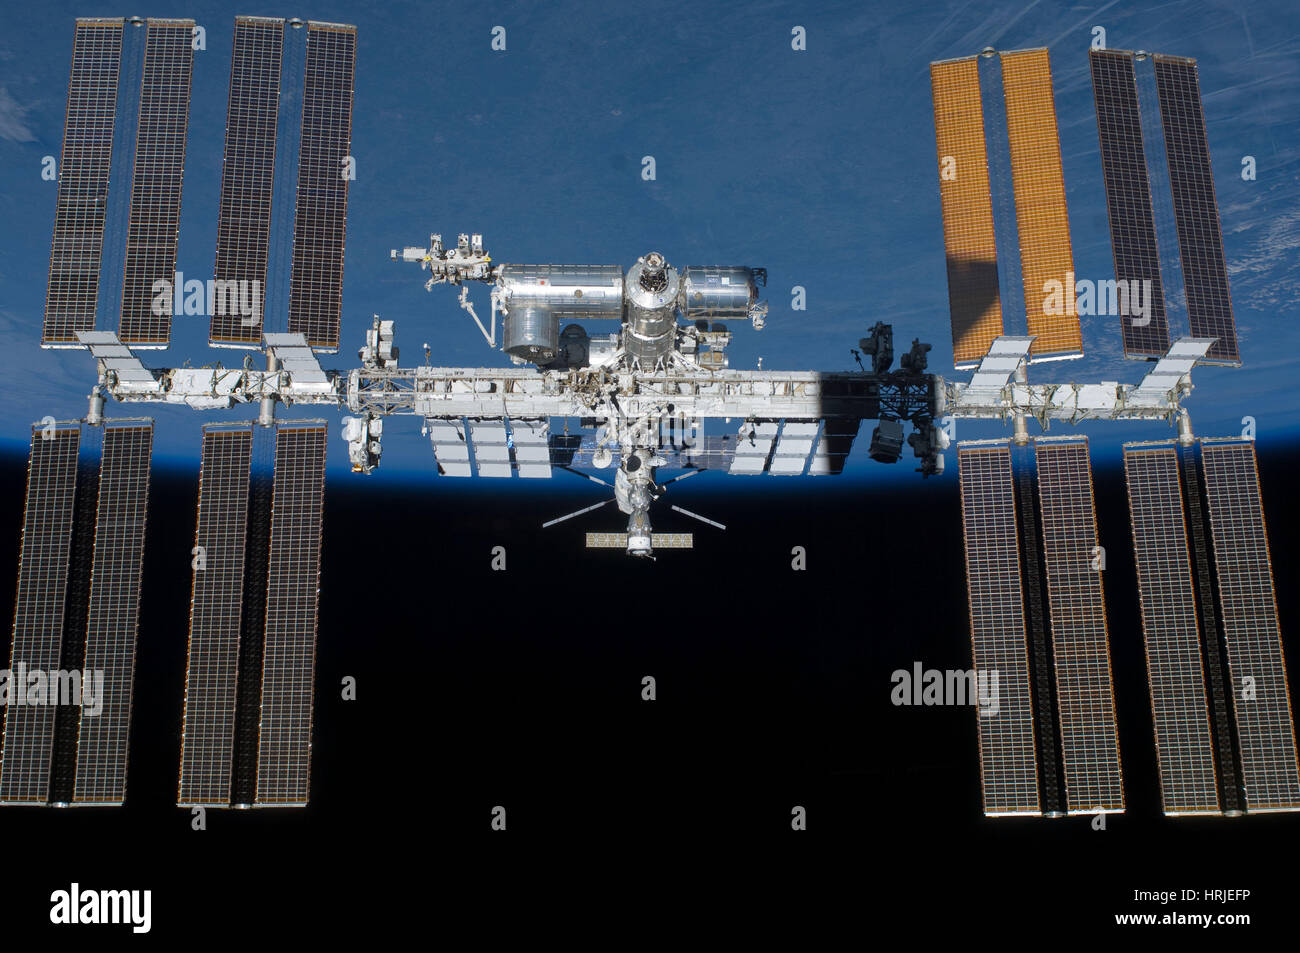 STS-134, internationale Raumstation, 2011 Stockbild